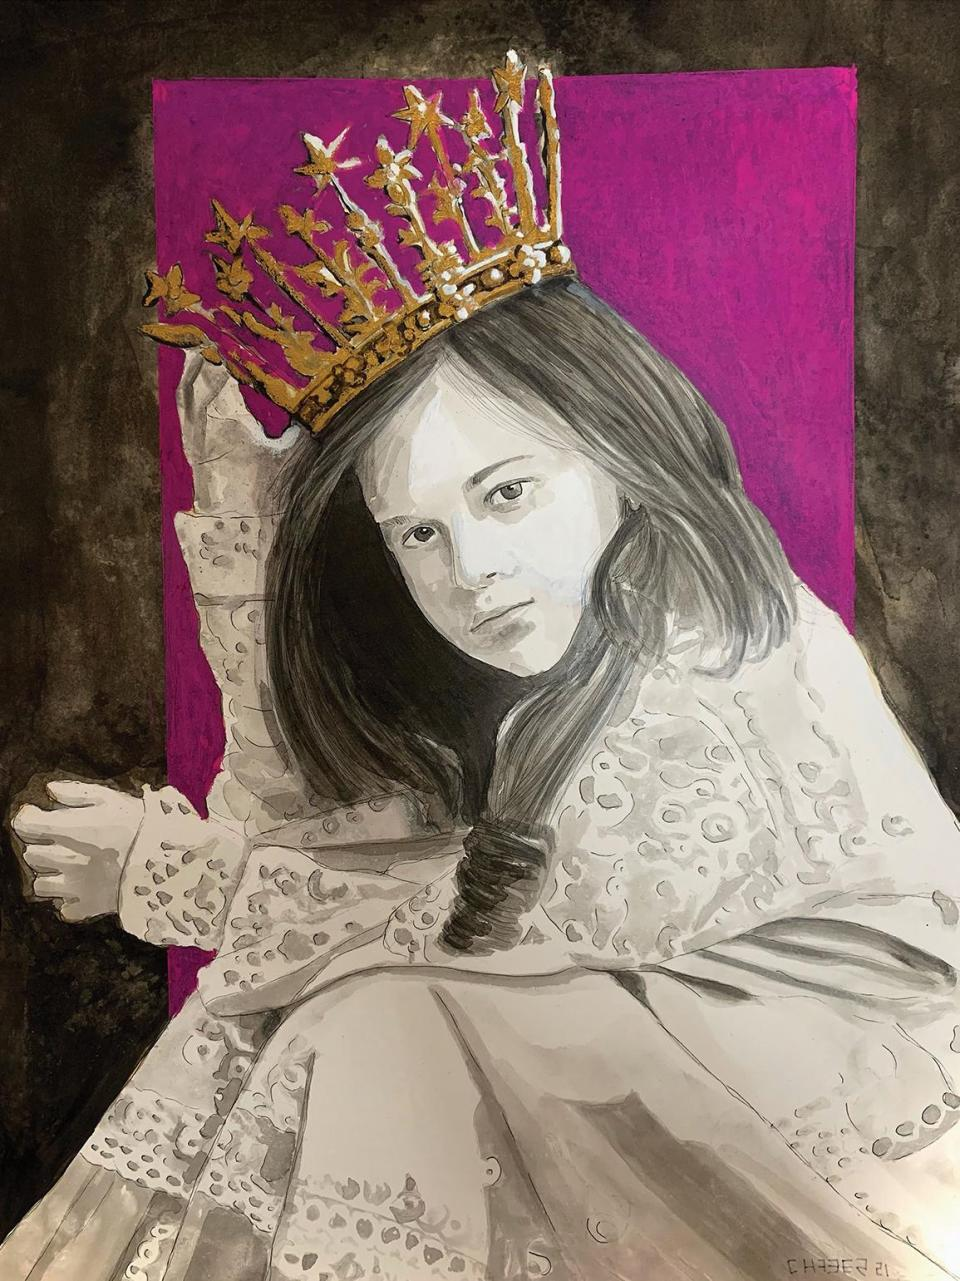 The Girl with the Crown